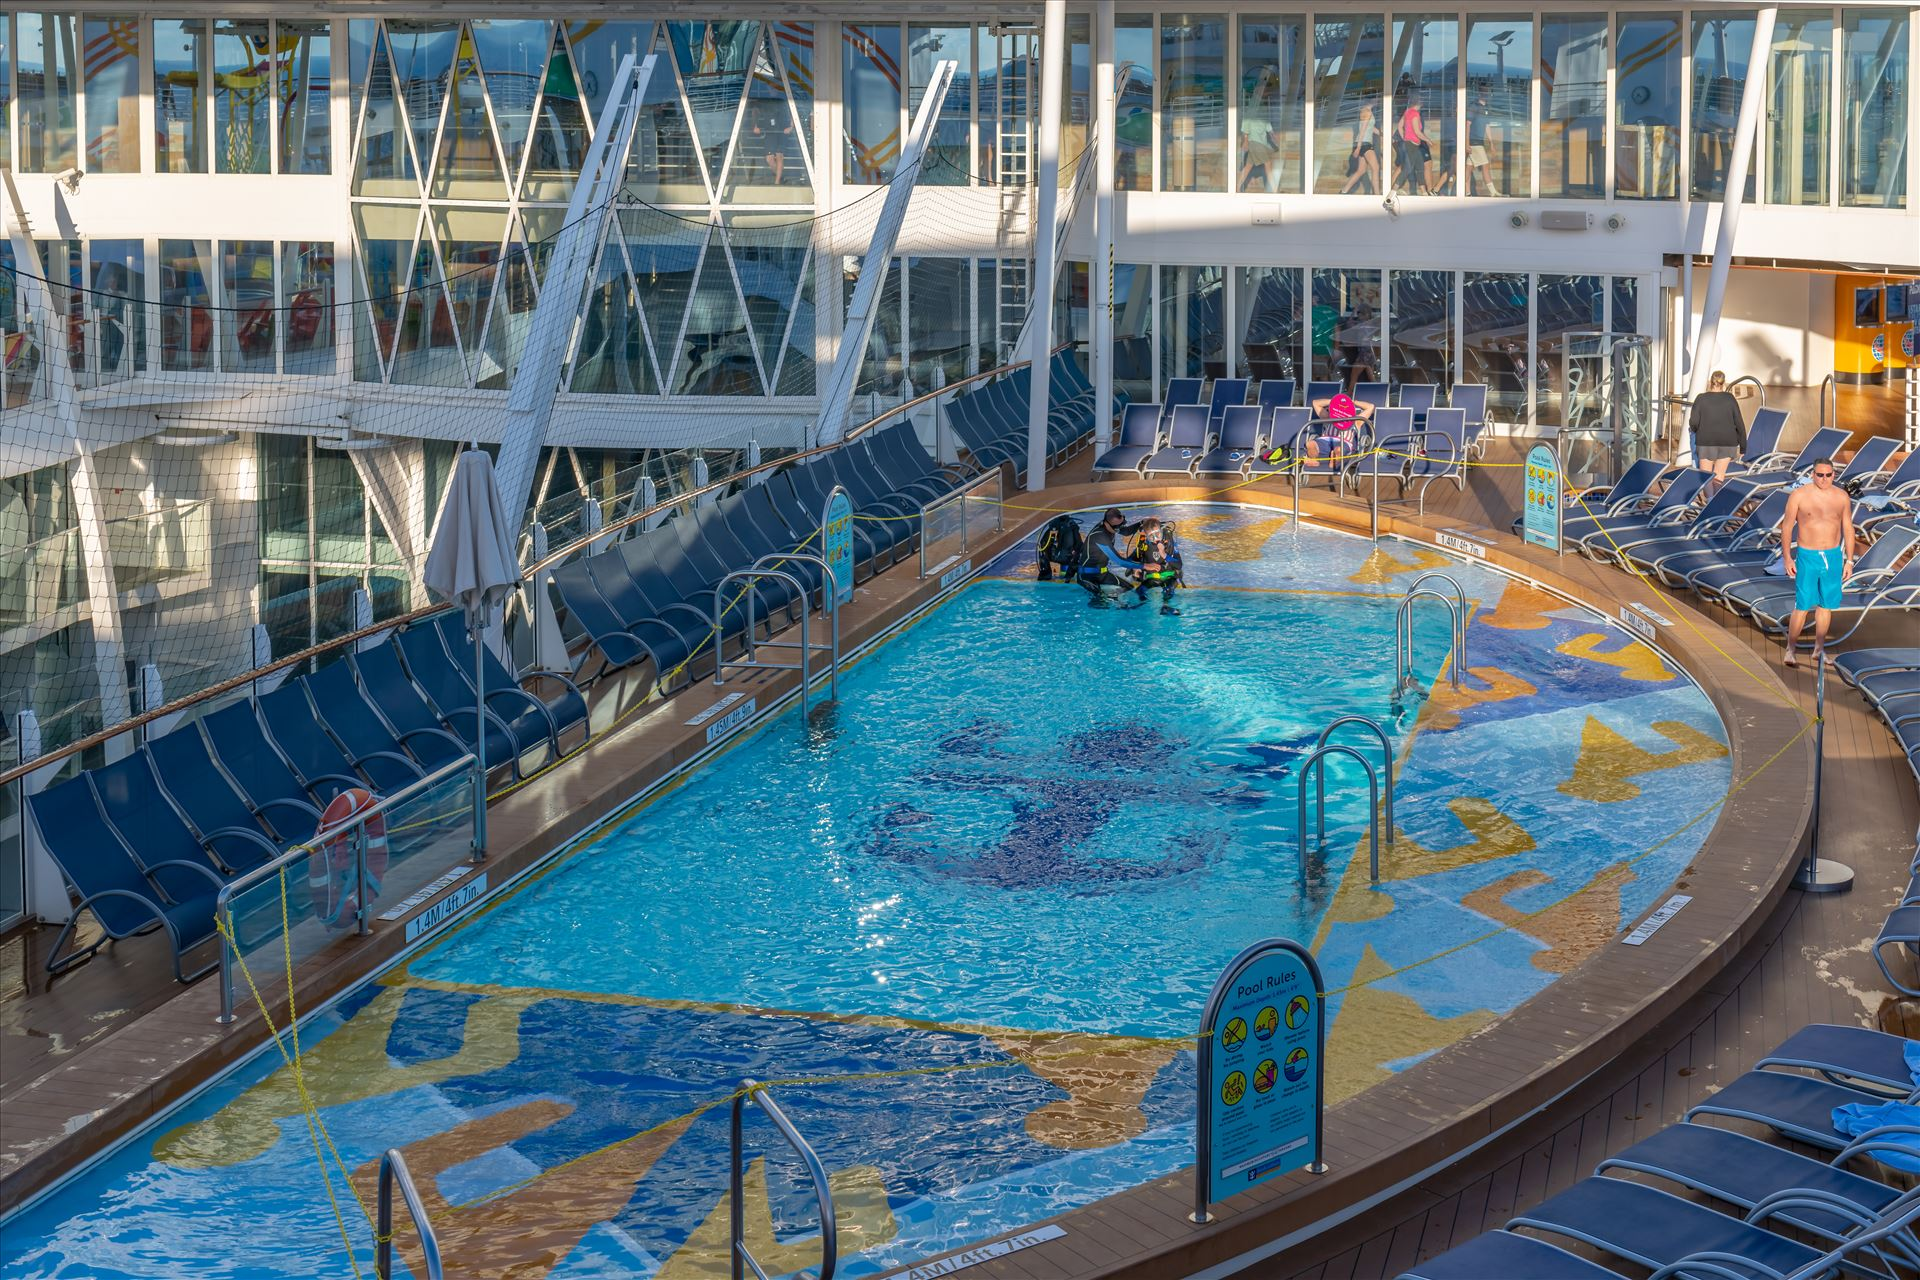 harmony of the seas harmony of the seas cruise February 17-24 2019 by Terry Kelly Photography